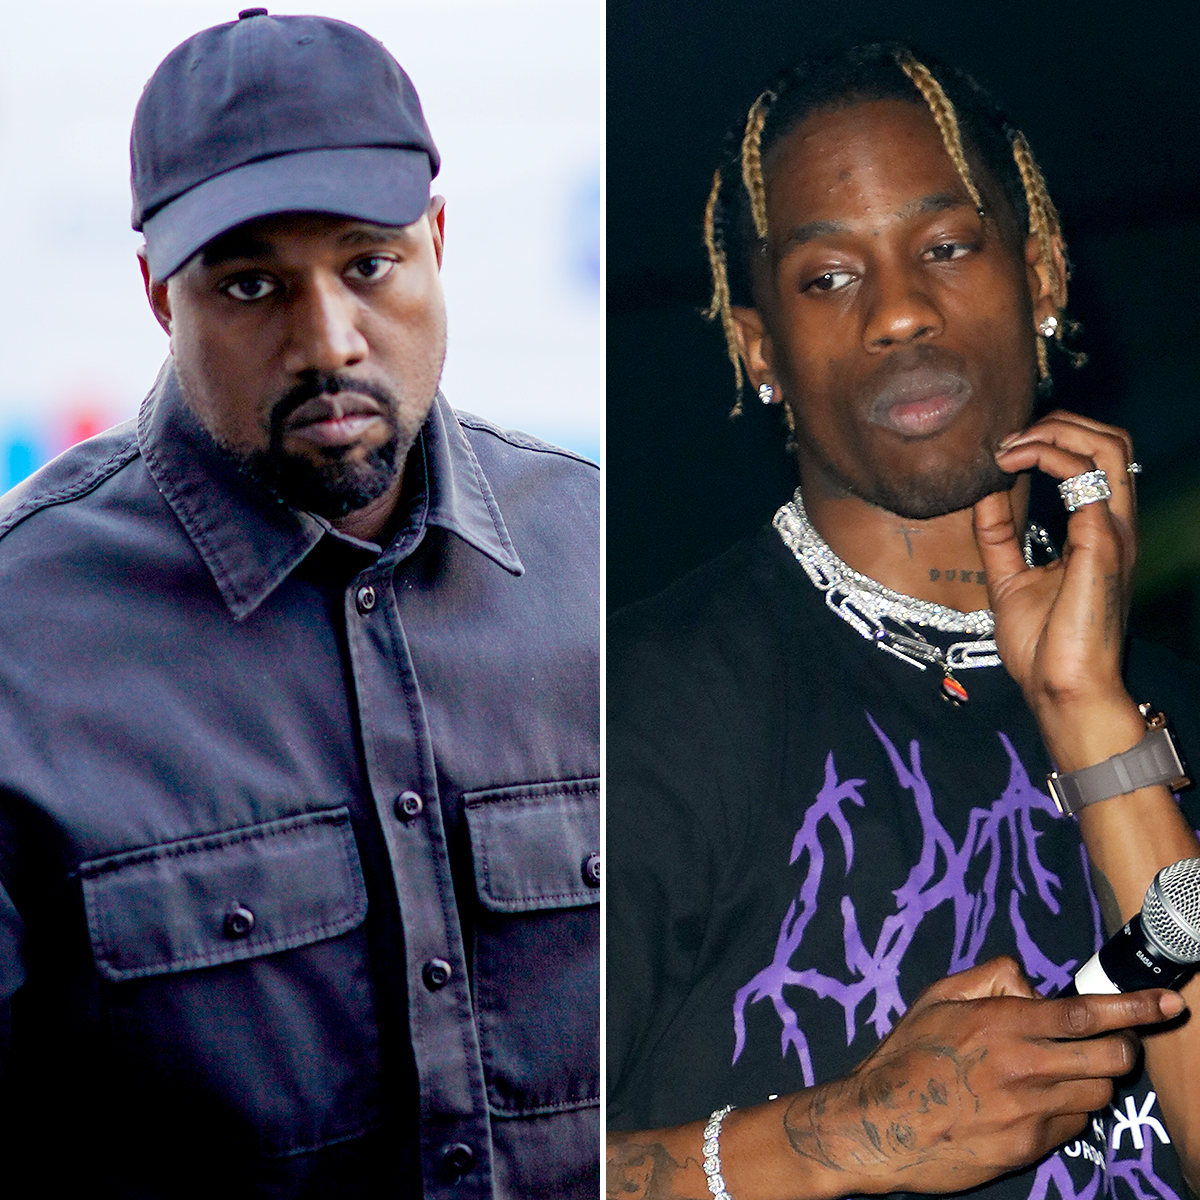 """kanye-west-travis-scott - The """"Gold Digger"""" rapper also felt slighted by Scott — who shares daughter Stormi Webster with West's sister-in-law Kylie Jenner — for allowing Drake to sneak-diss West on """"Sicko Mode."""" He took issue with Drake's line that contained the phrase, """"Checks over stripes,"""" as he has a sneaker line through Adidas — which bears three stripes in its logo — while Drake is associated with Nike, which bears a checkmark."""